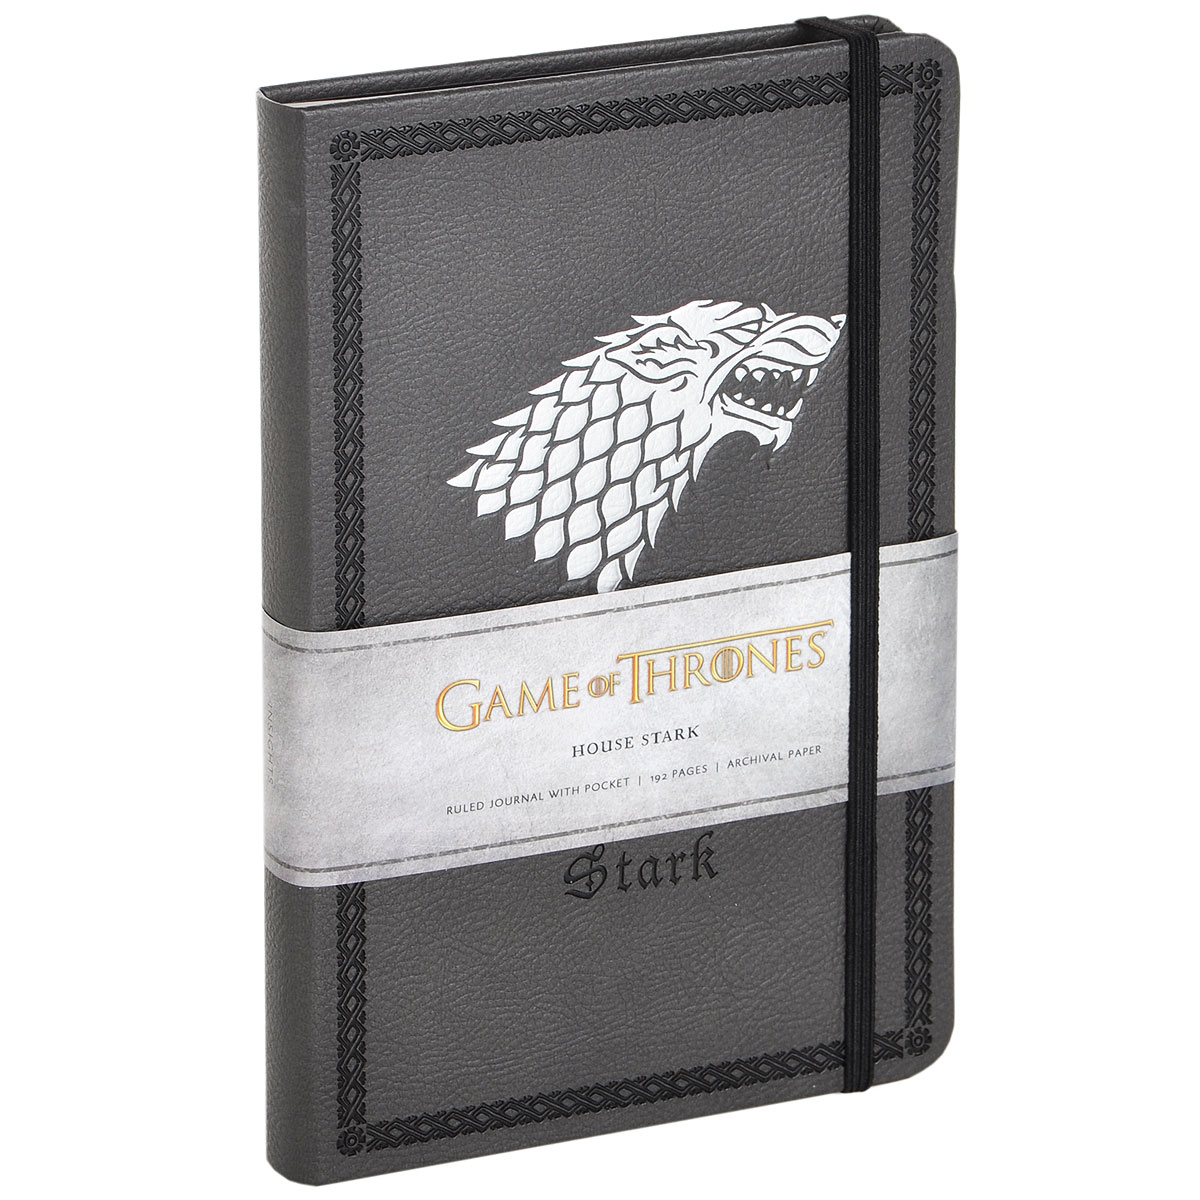 Game of Thrones: House Stark: Ruled Journal With Pocket game of thrones casual shoes women house stark winter is coming printed summer style superstar graffiti canvas shoes big size